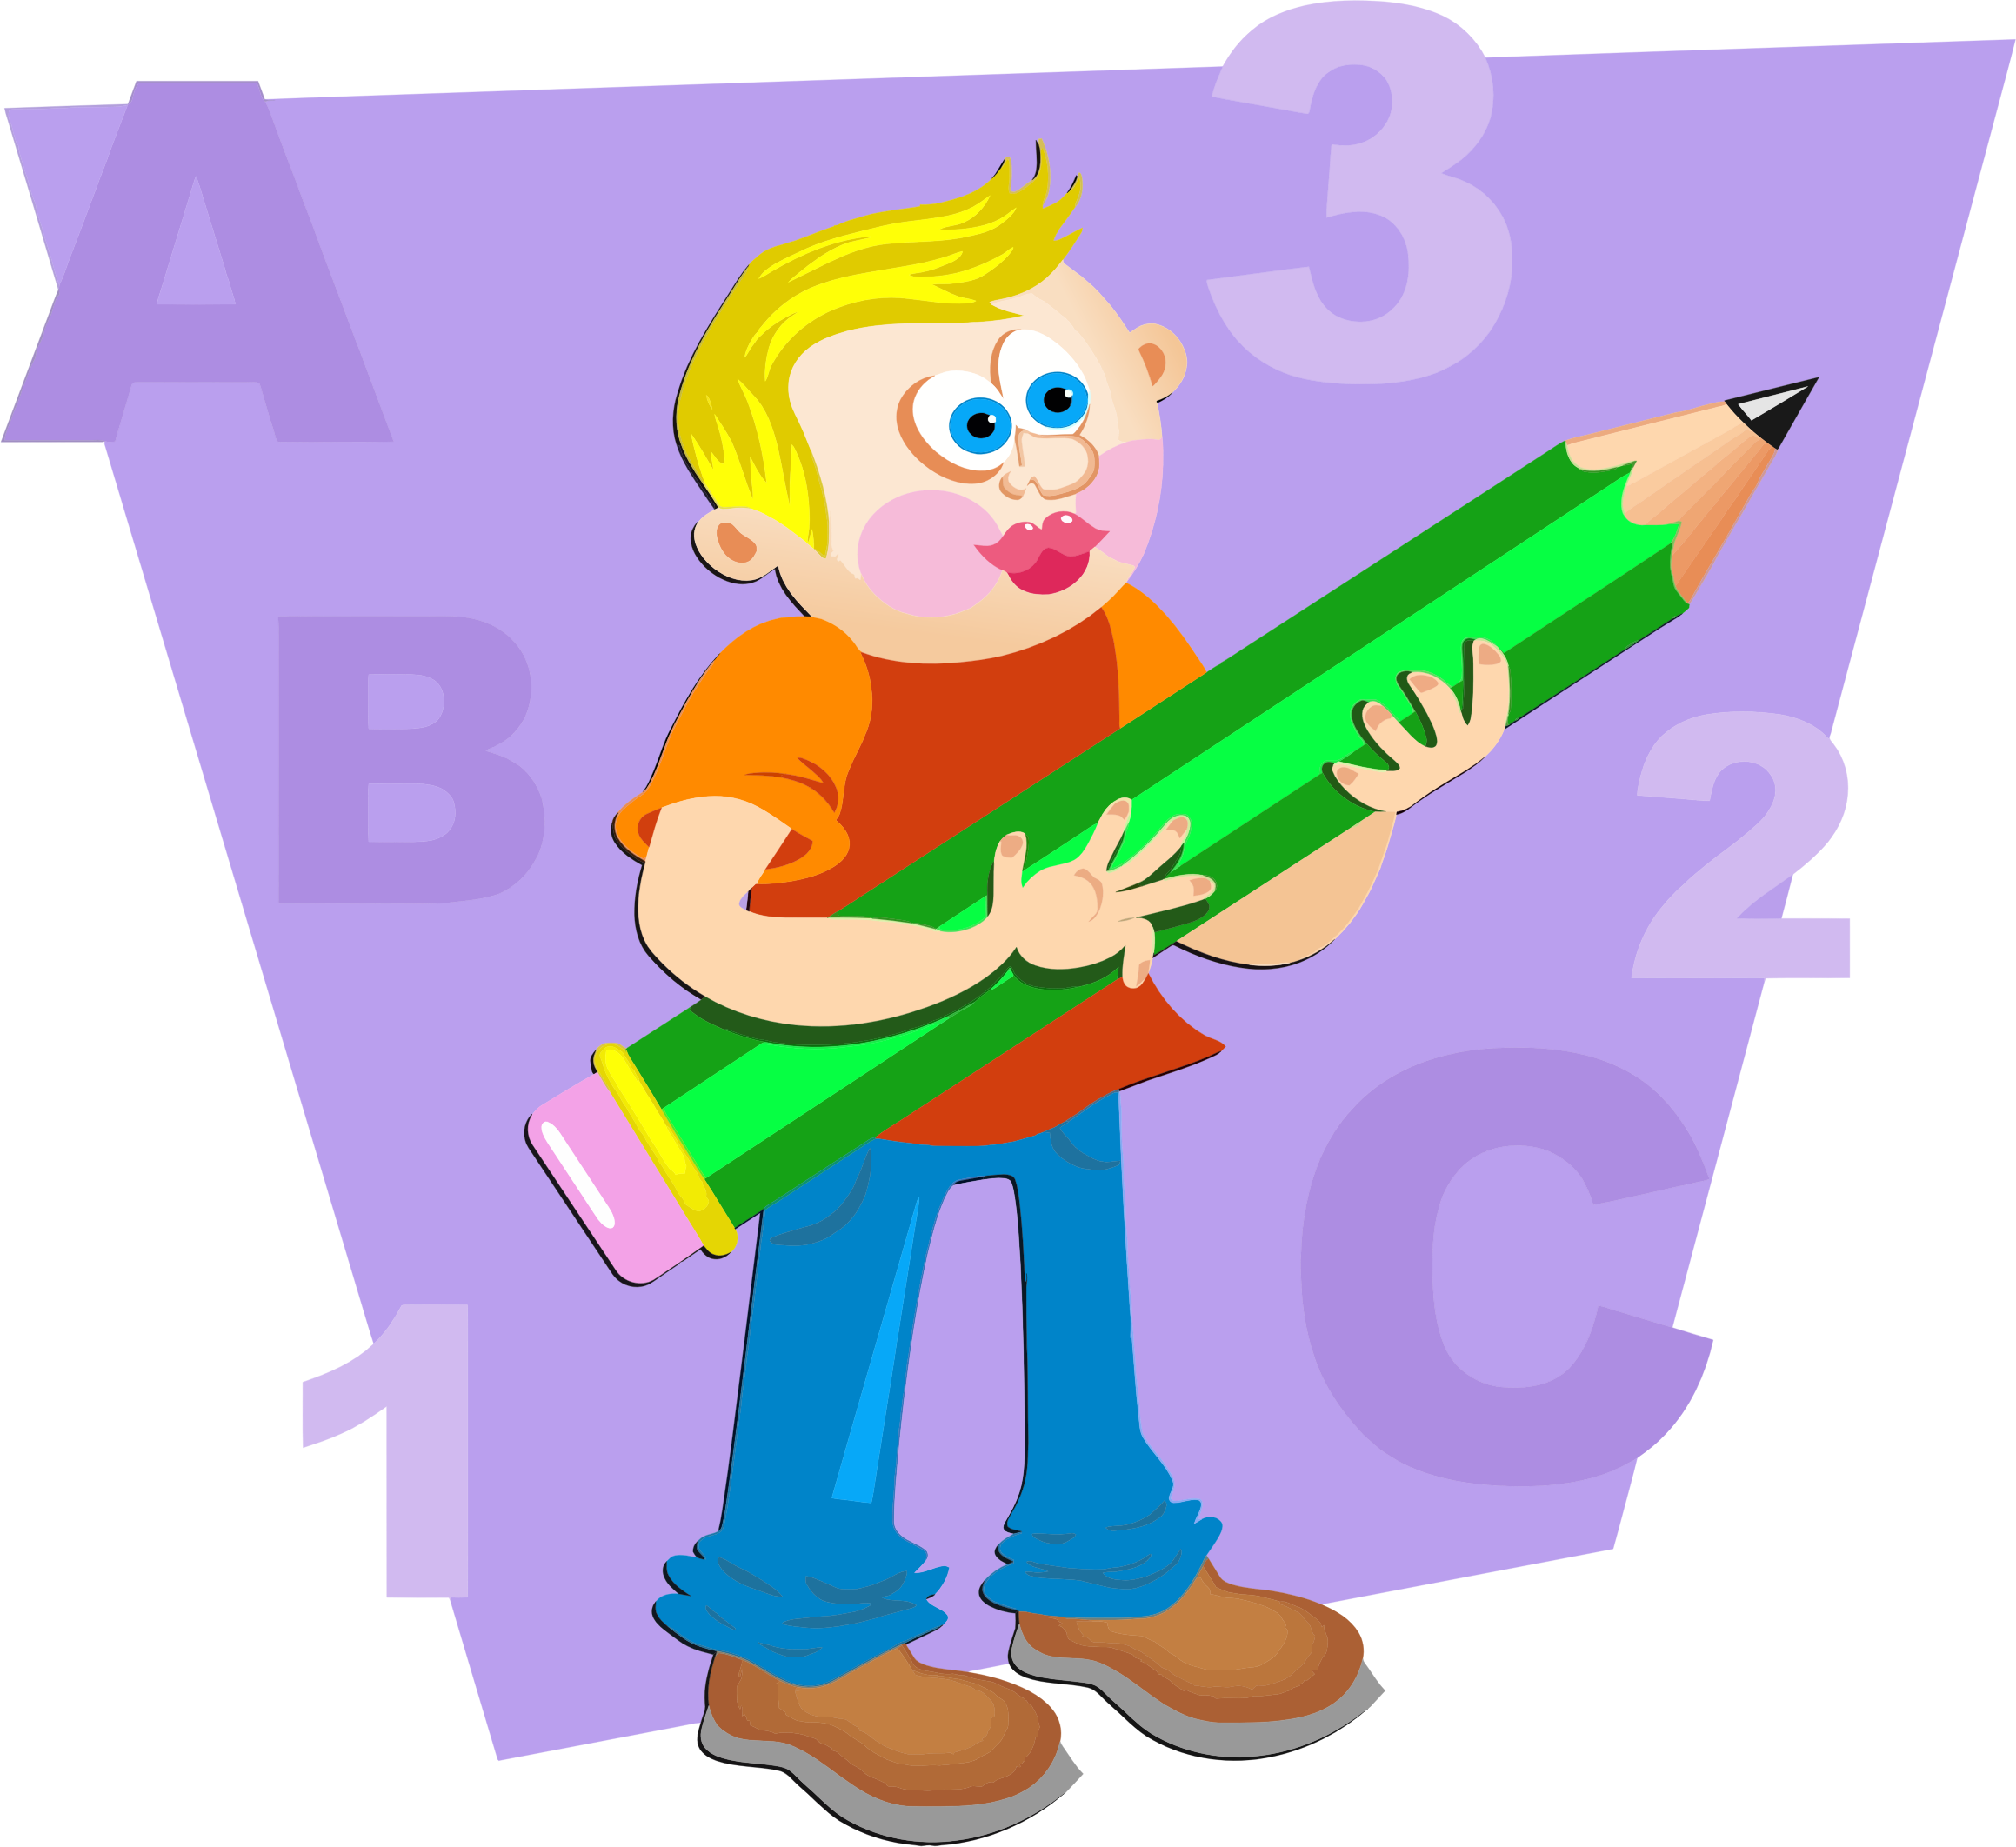 Guns clipart boy. With giant pencil big